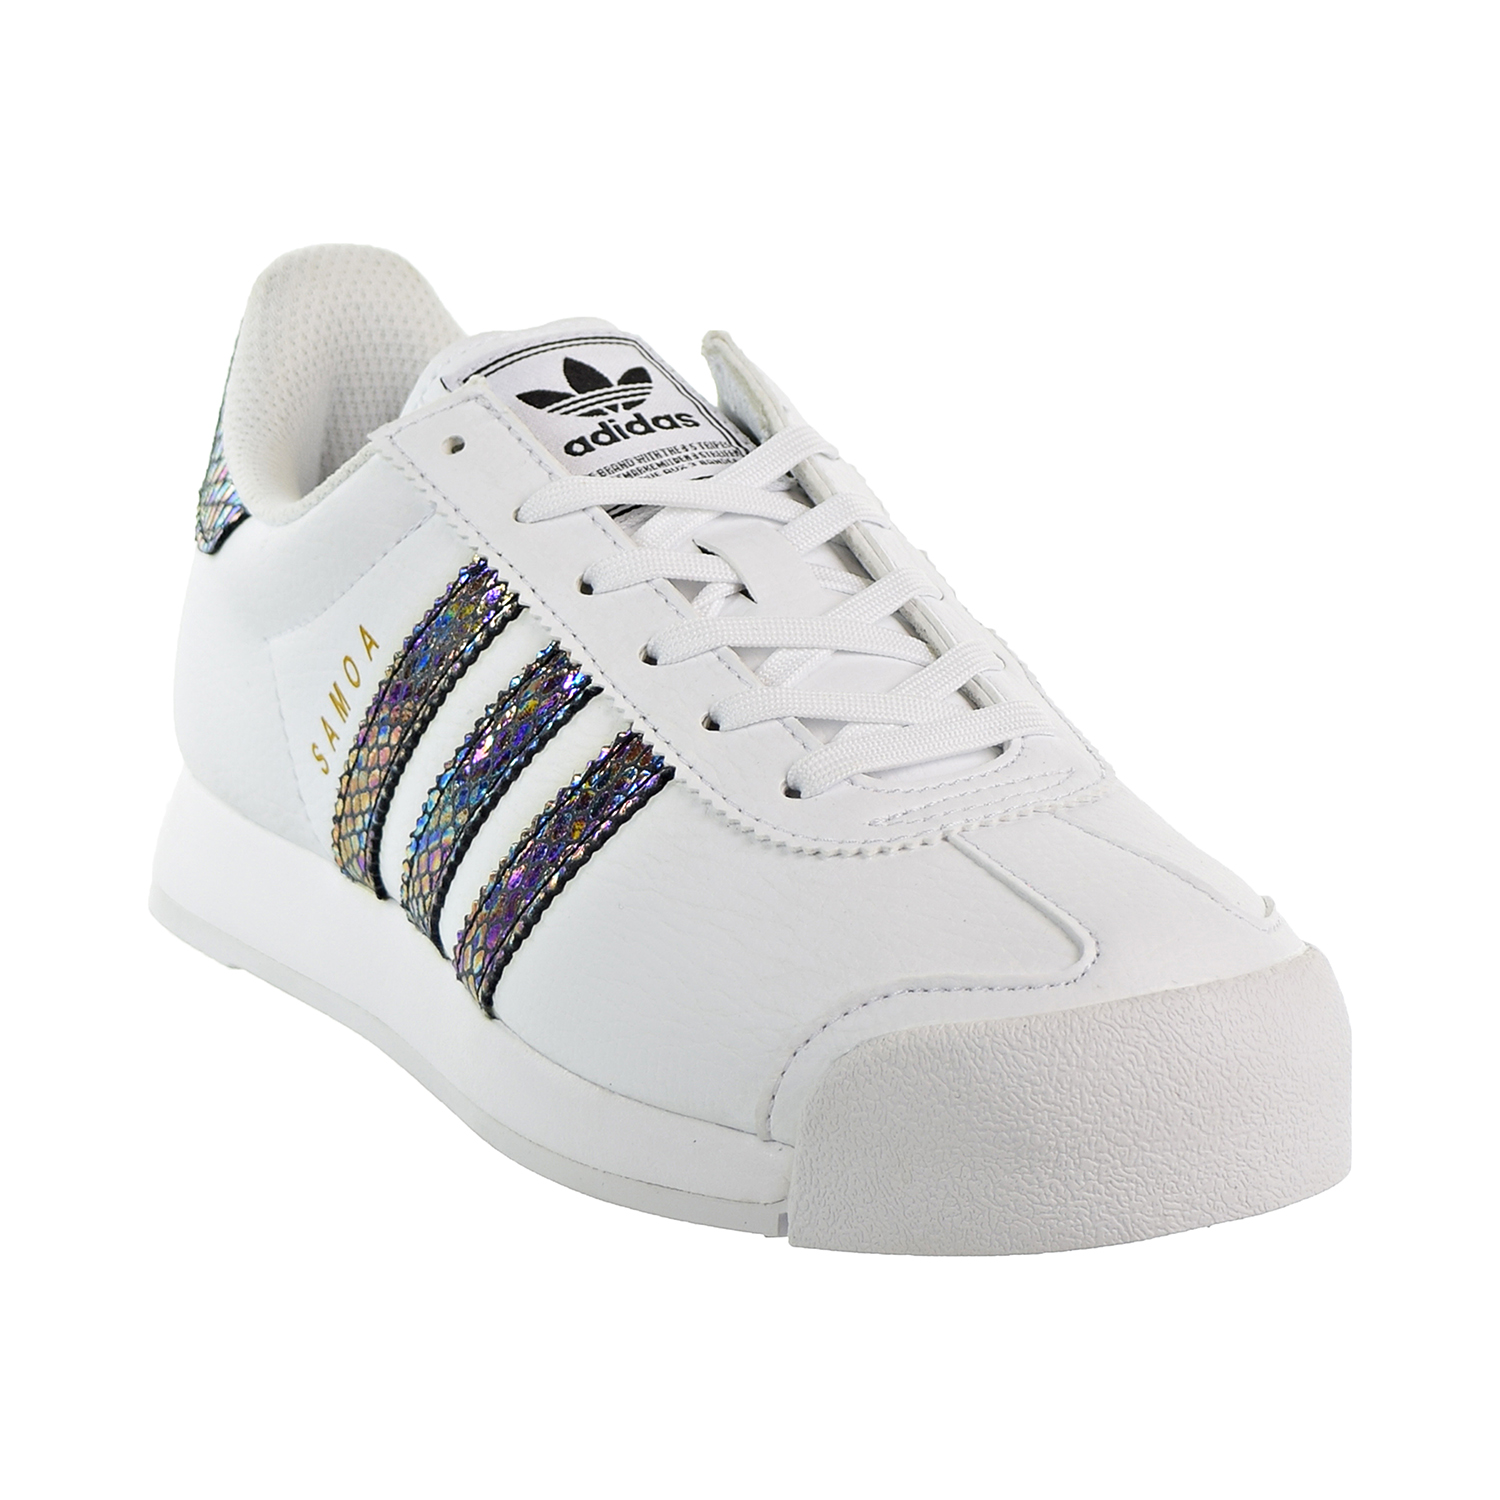 huge selection of c8b75 0016a Adidas Samoa J Snake Big Kids  Shoes Footwear White Footwear White Core  Black bw1303. Description. The adidas Originals ...